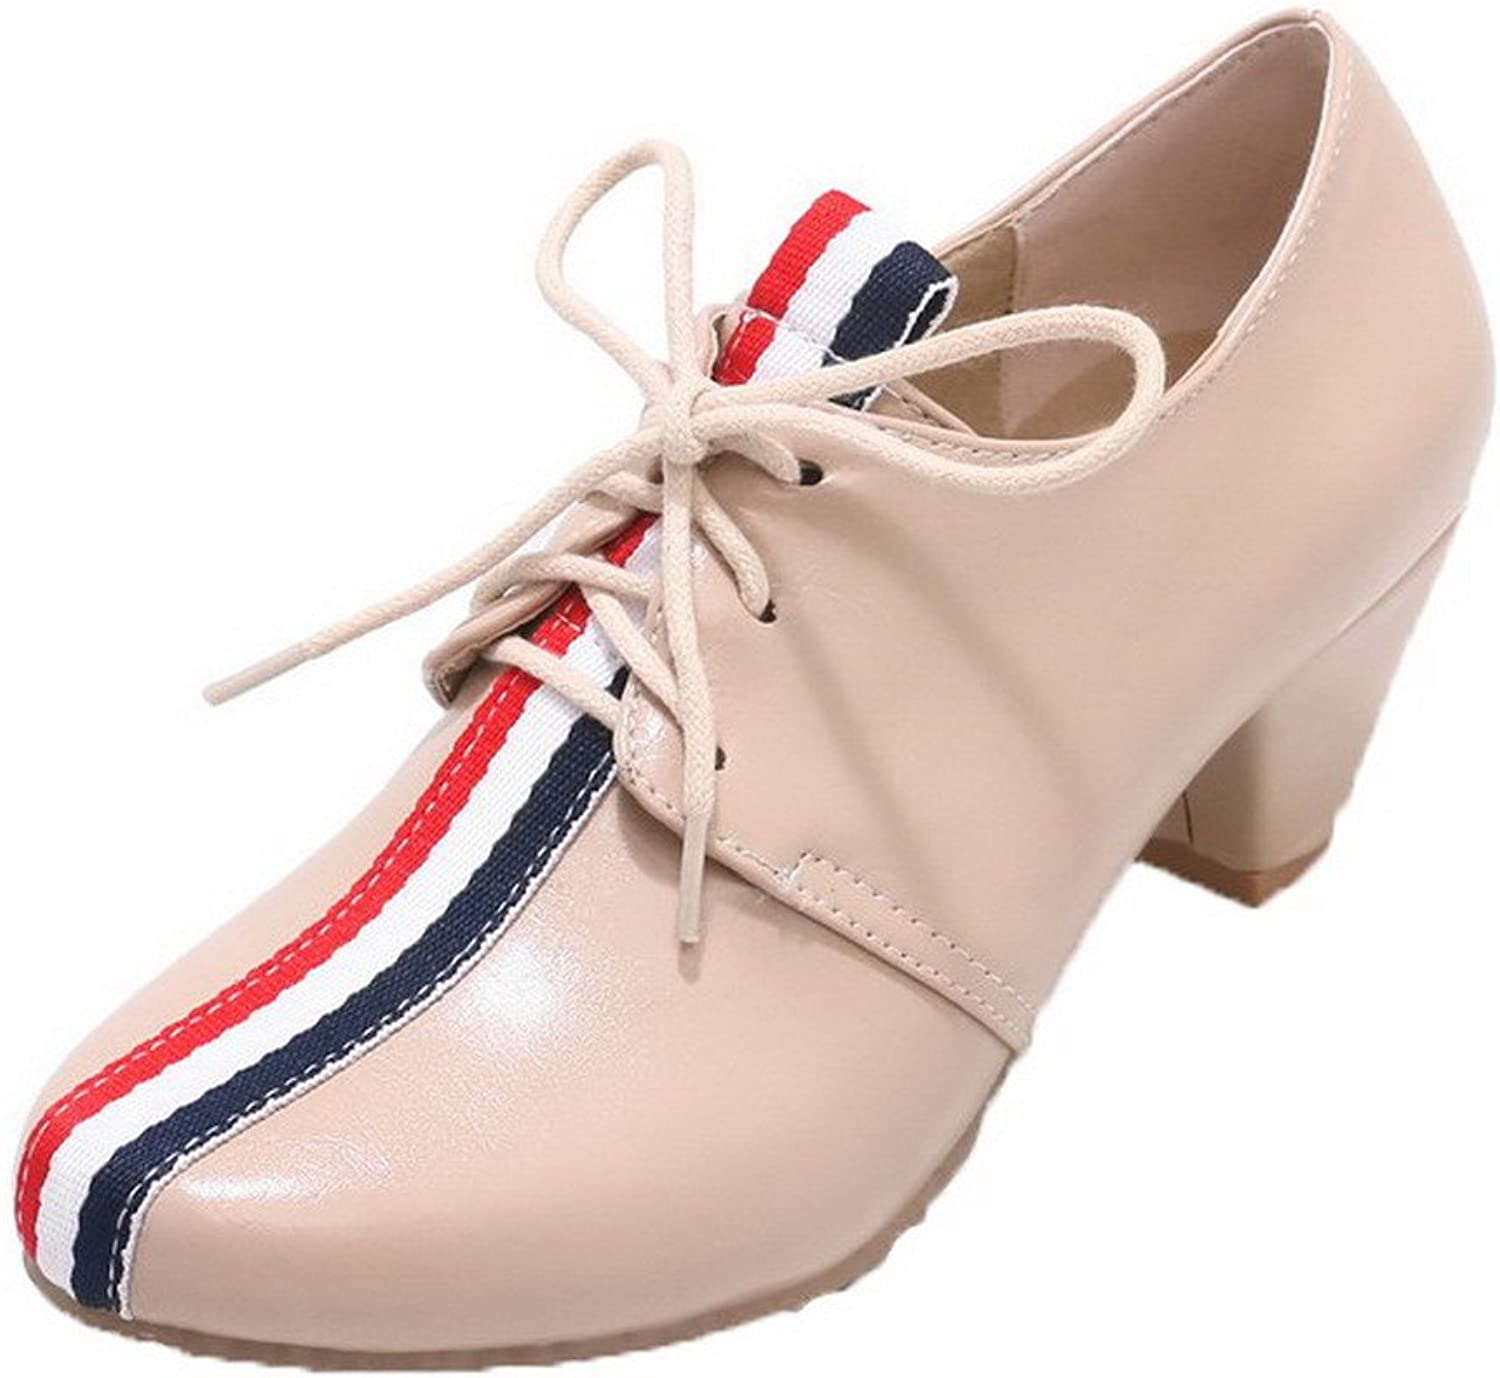 AllhqFashion Women's Kitten-Heels Lace-up Round Closed Toe Court shoes